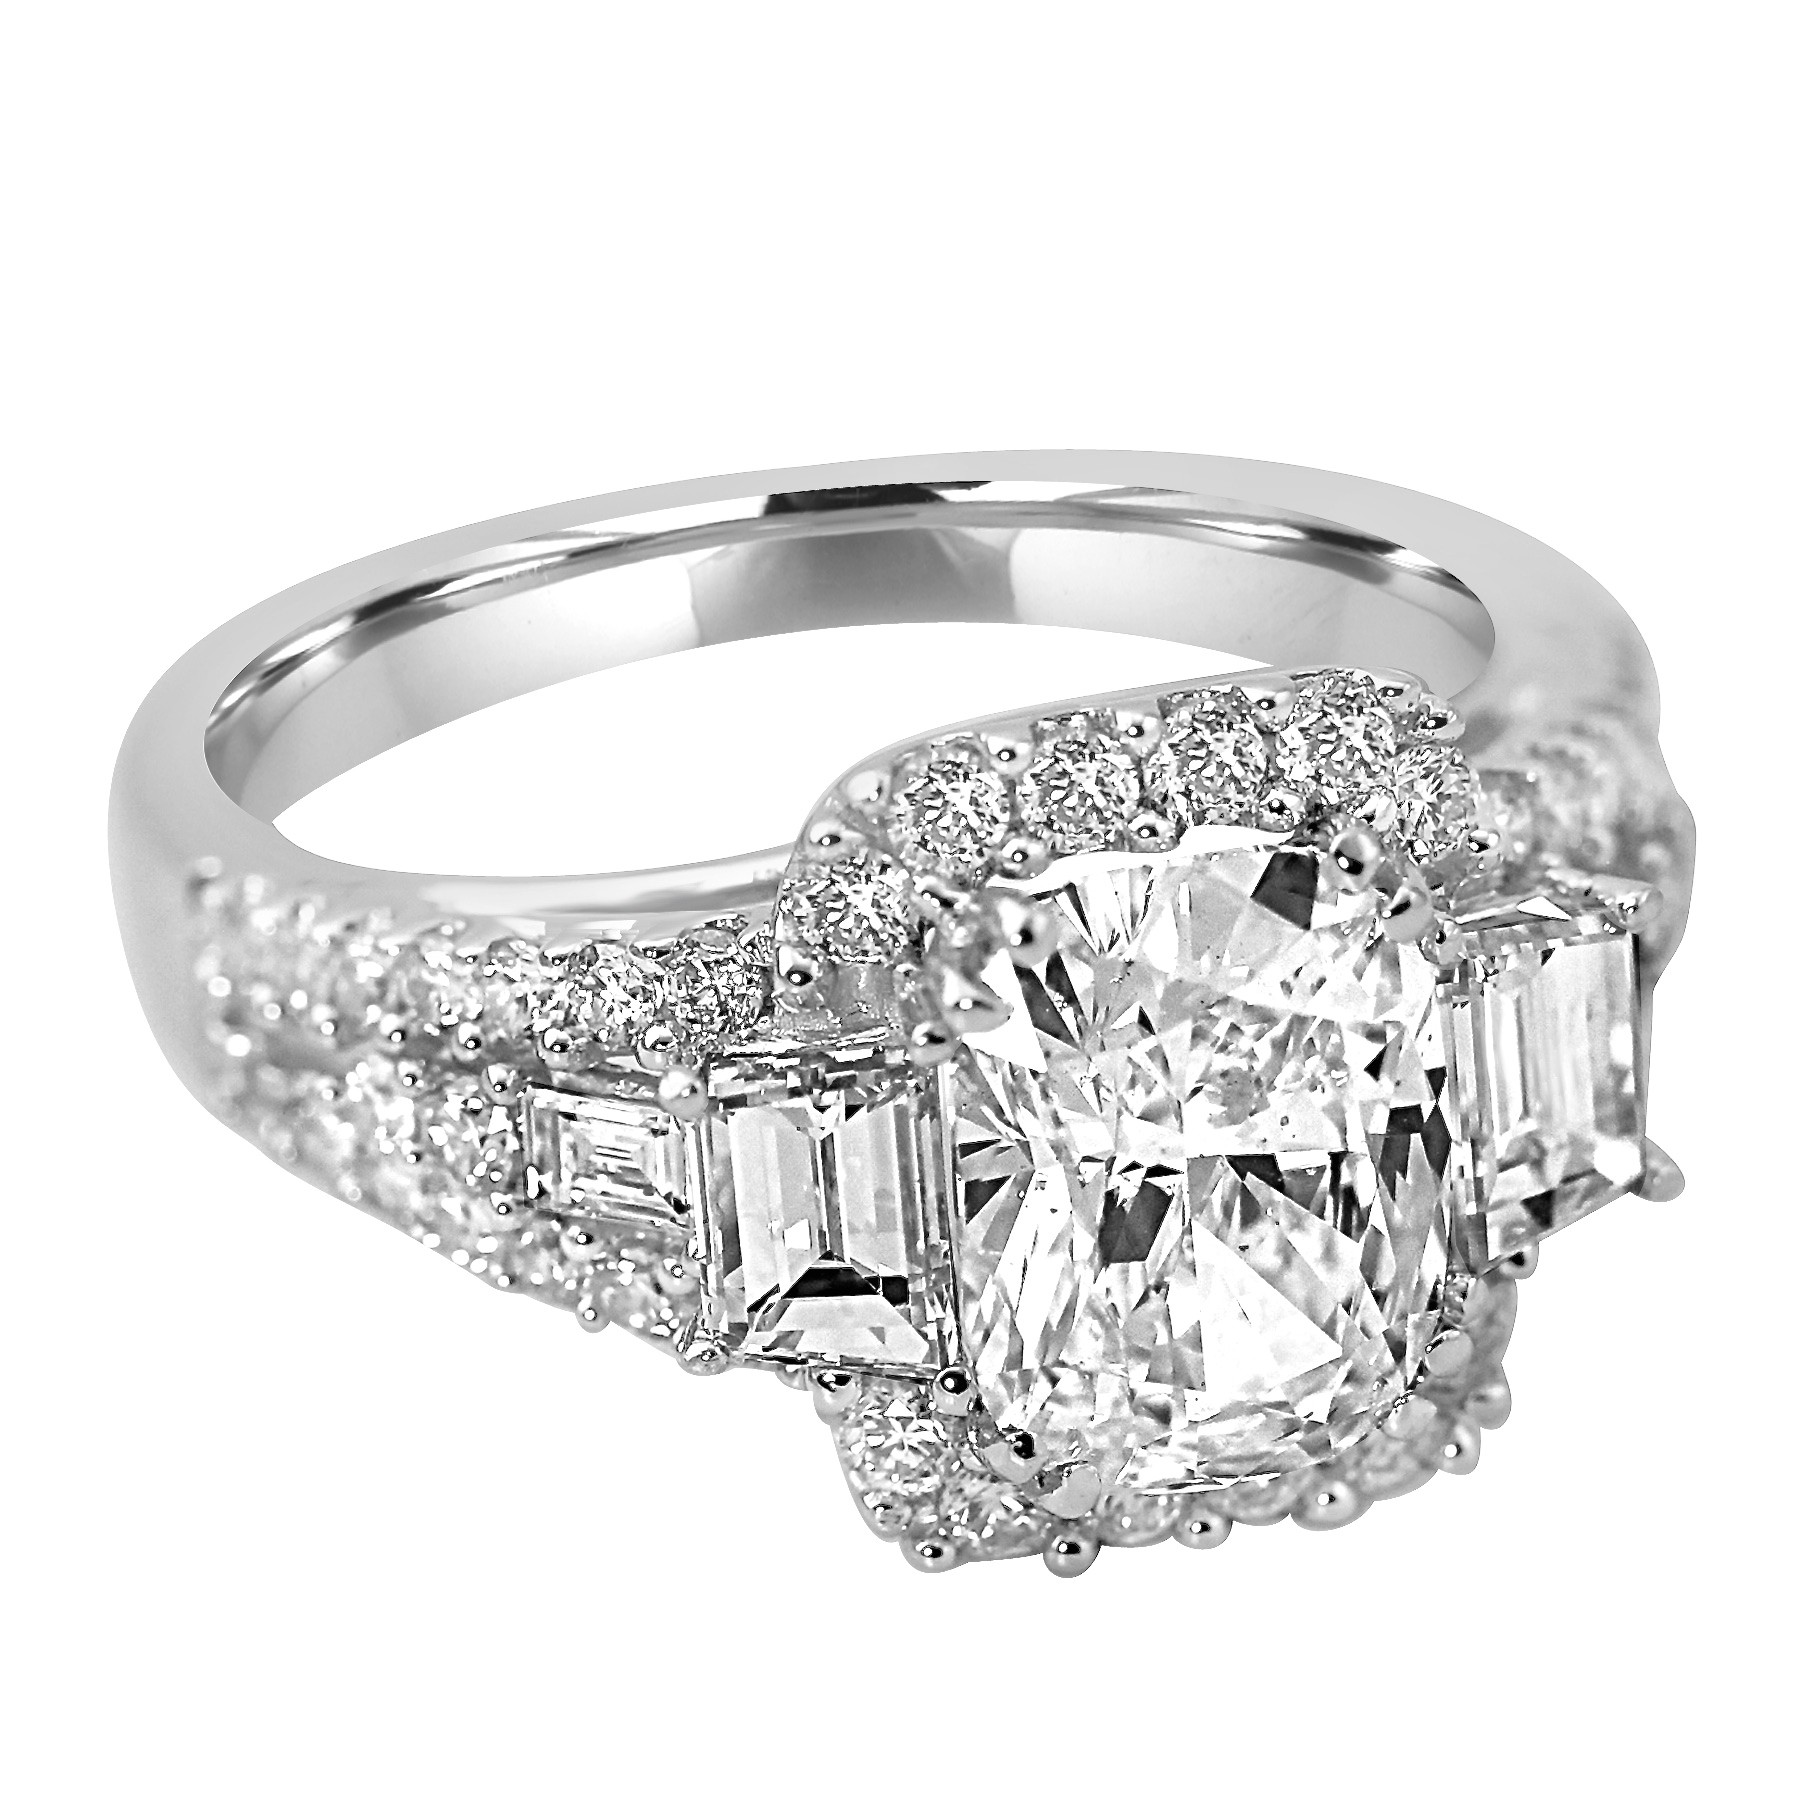 carat halo engagement toddreed todd rings new custom cusion cushion cut product ring arrivals reed finished diamond